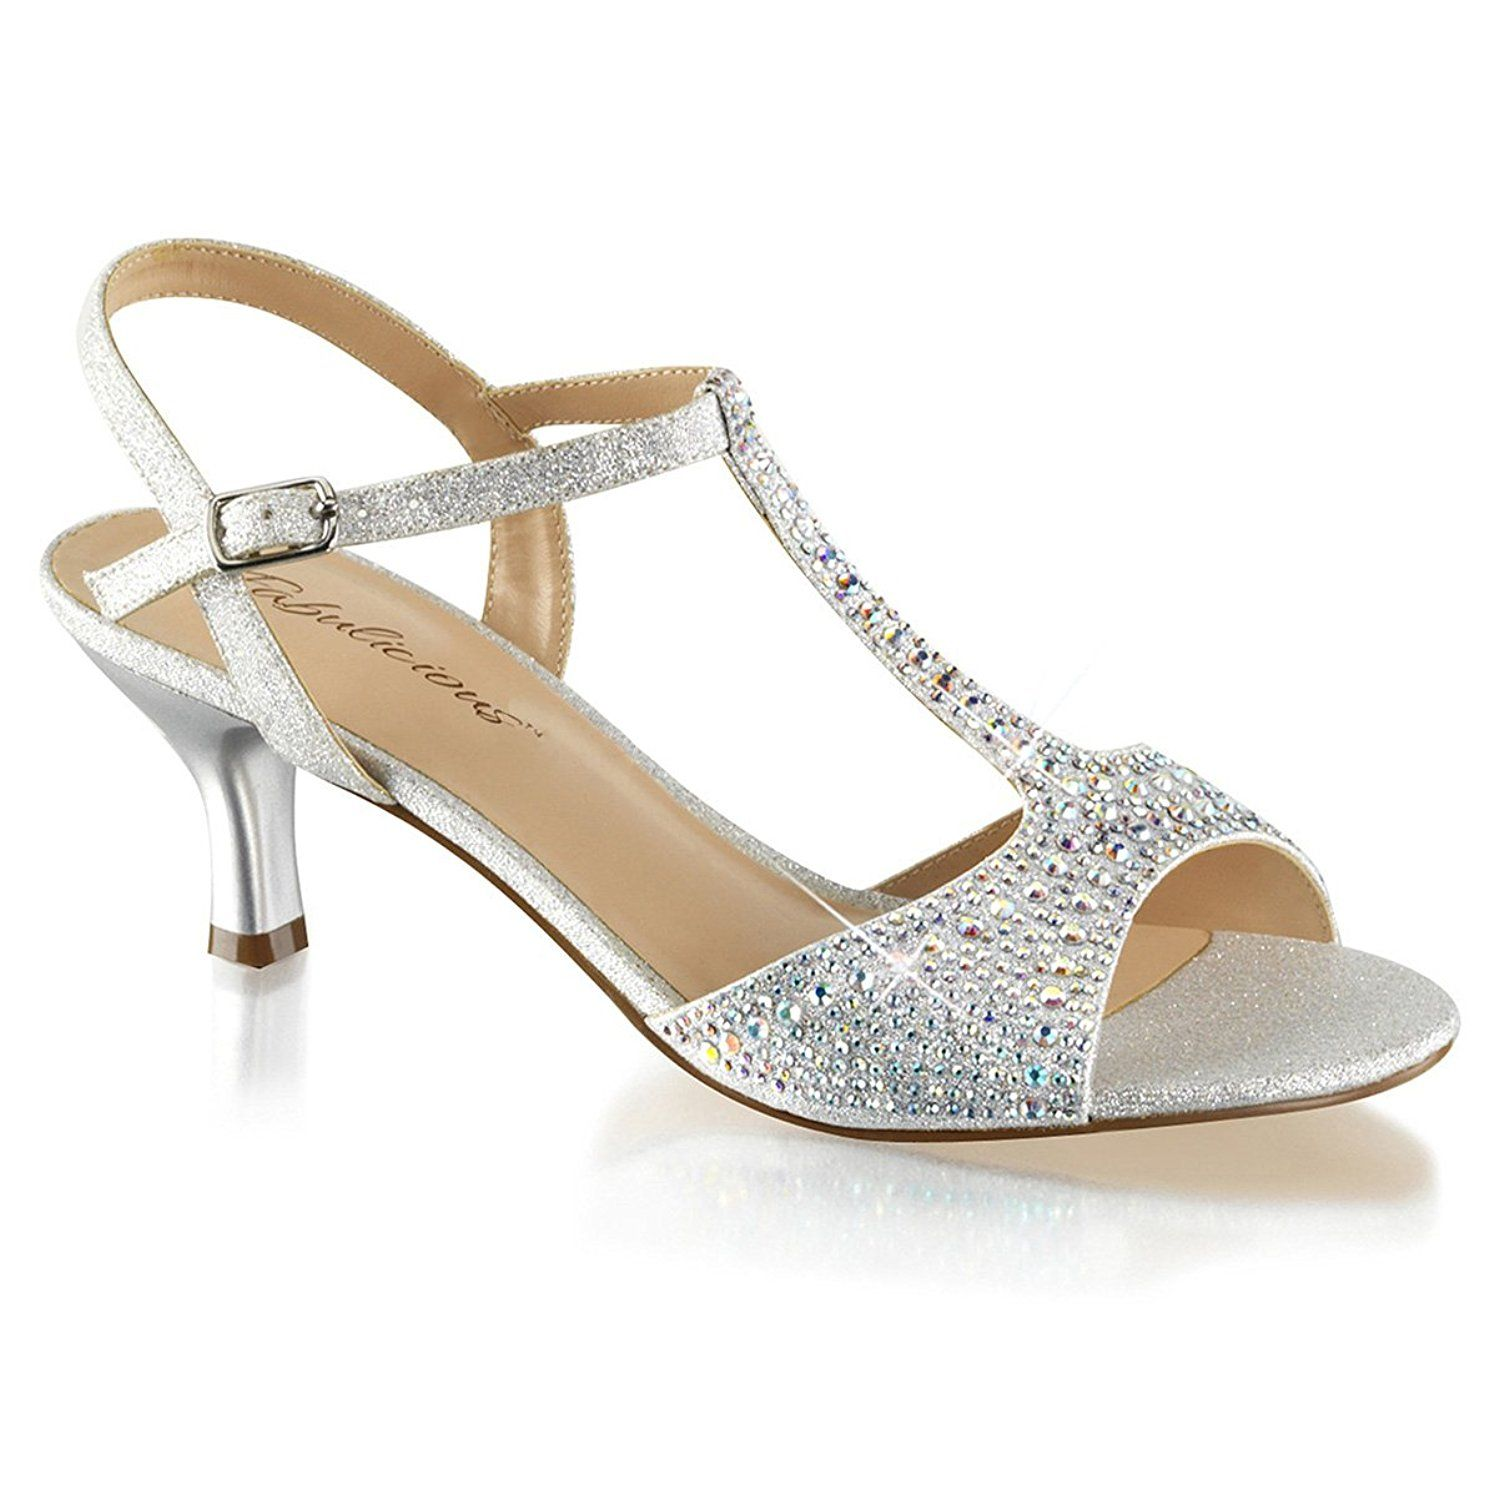 Womens Kitten Heel Wedding Shoes T Strap Sandals Silver Rhinestone 2 1 2 Inch Click Image For More De Wedding Shoes Heels Silver Wedding Shoes Flapper Shoes